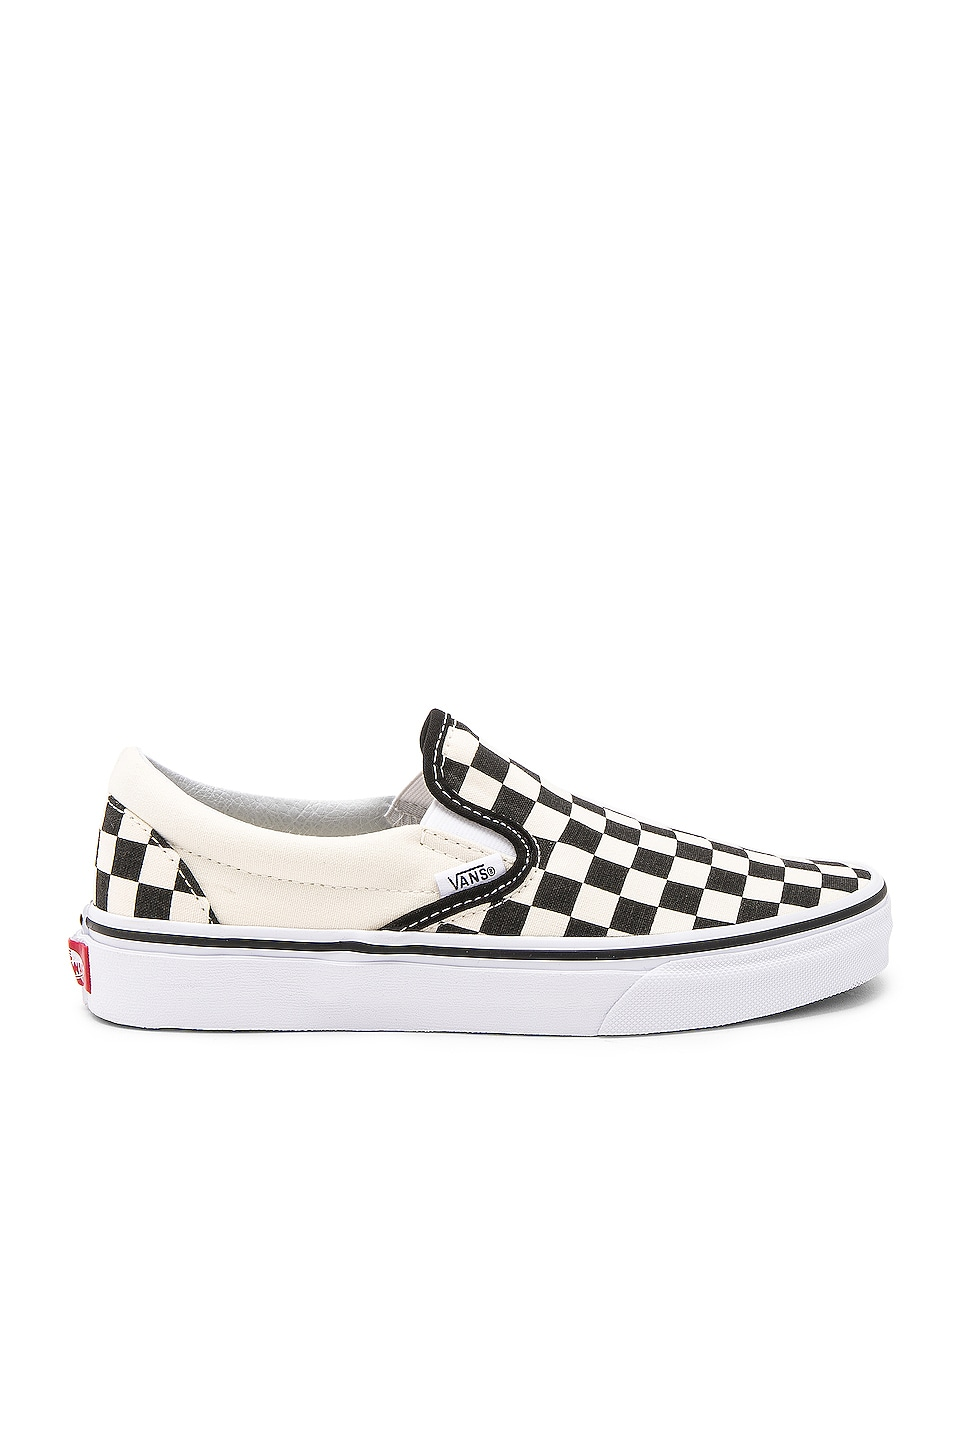 Vans Classic Slip On in Black and White Checker & White